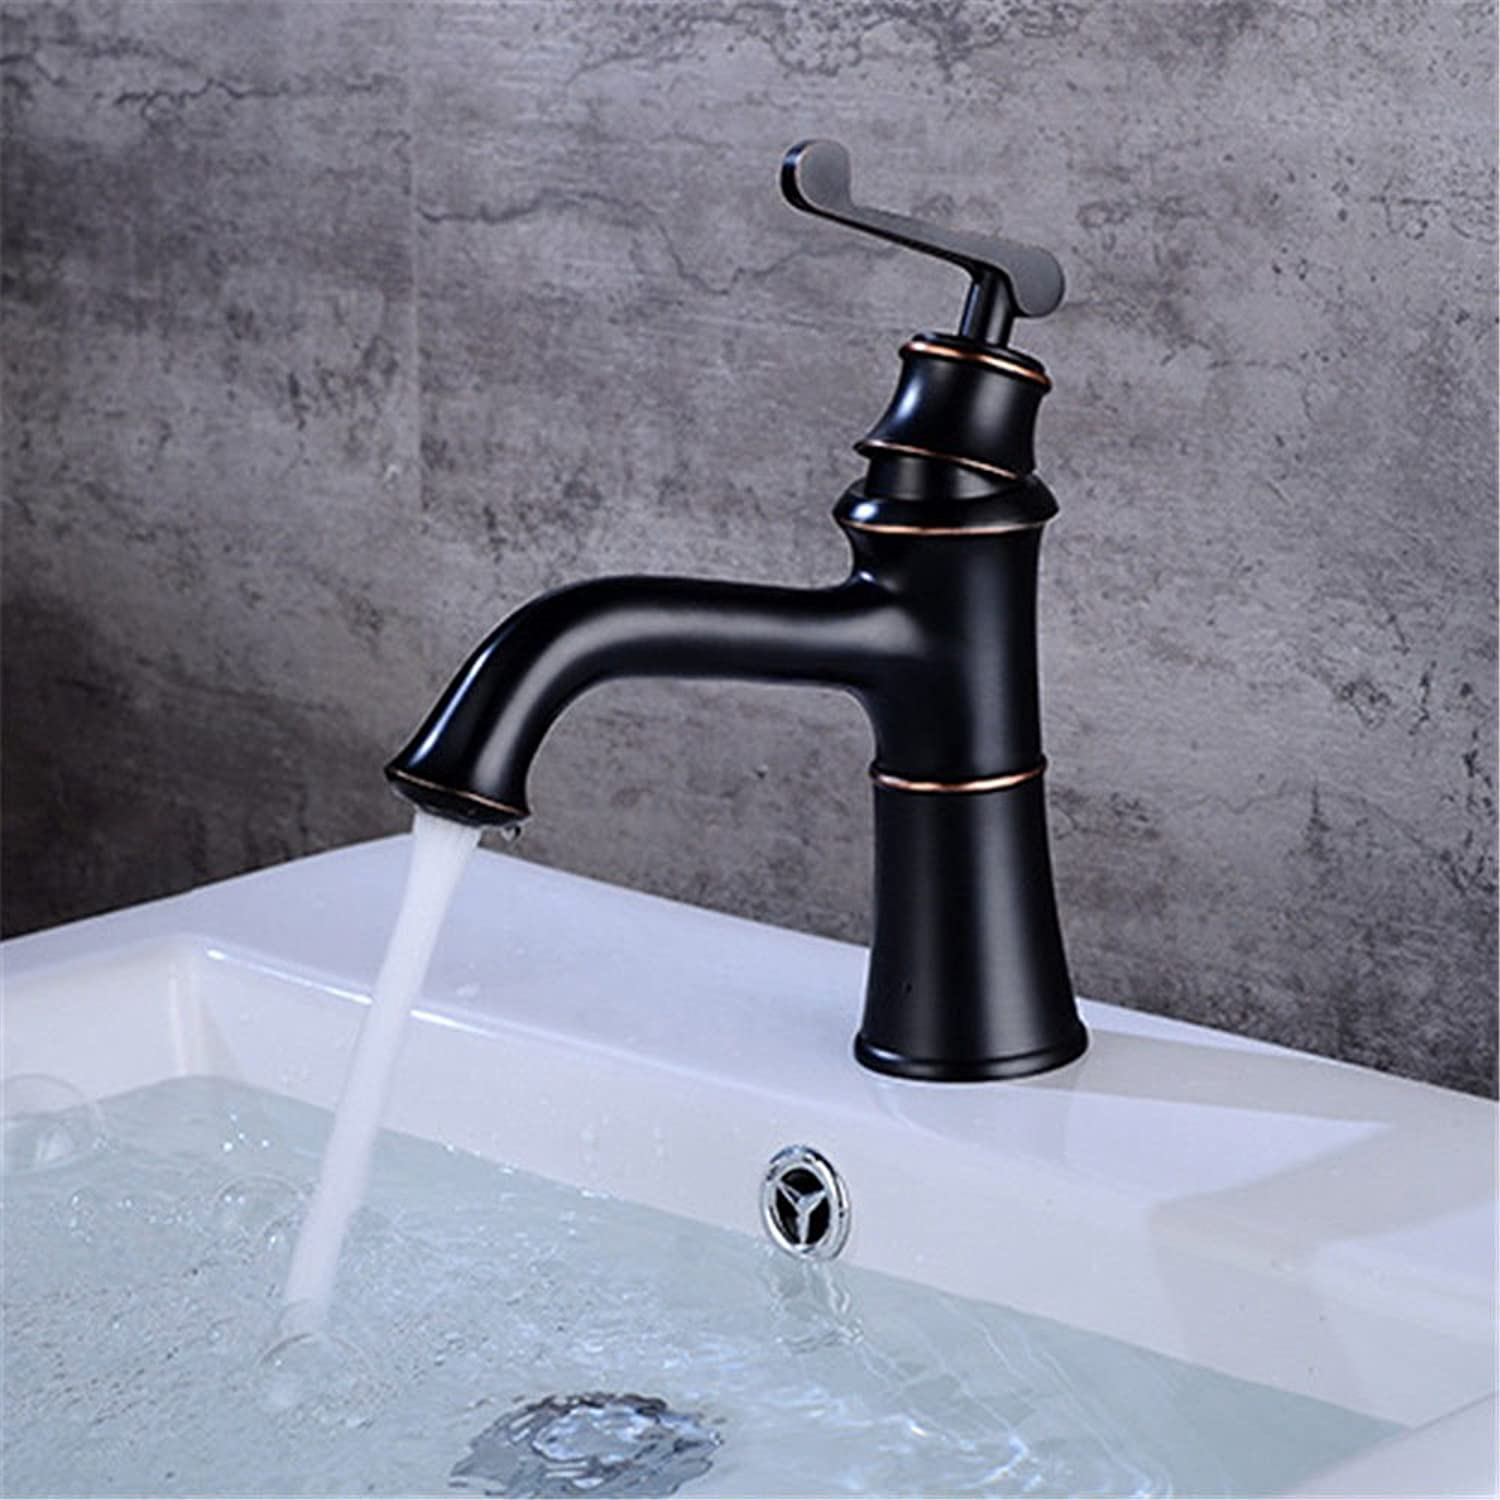 Gyps Faucet Single-Lever Washbasin Mixer Tap Black Wash Basin Tap and Cold Water on Sink Single Hole Sink Mixer Tap